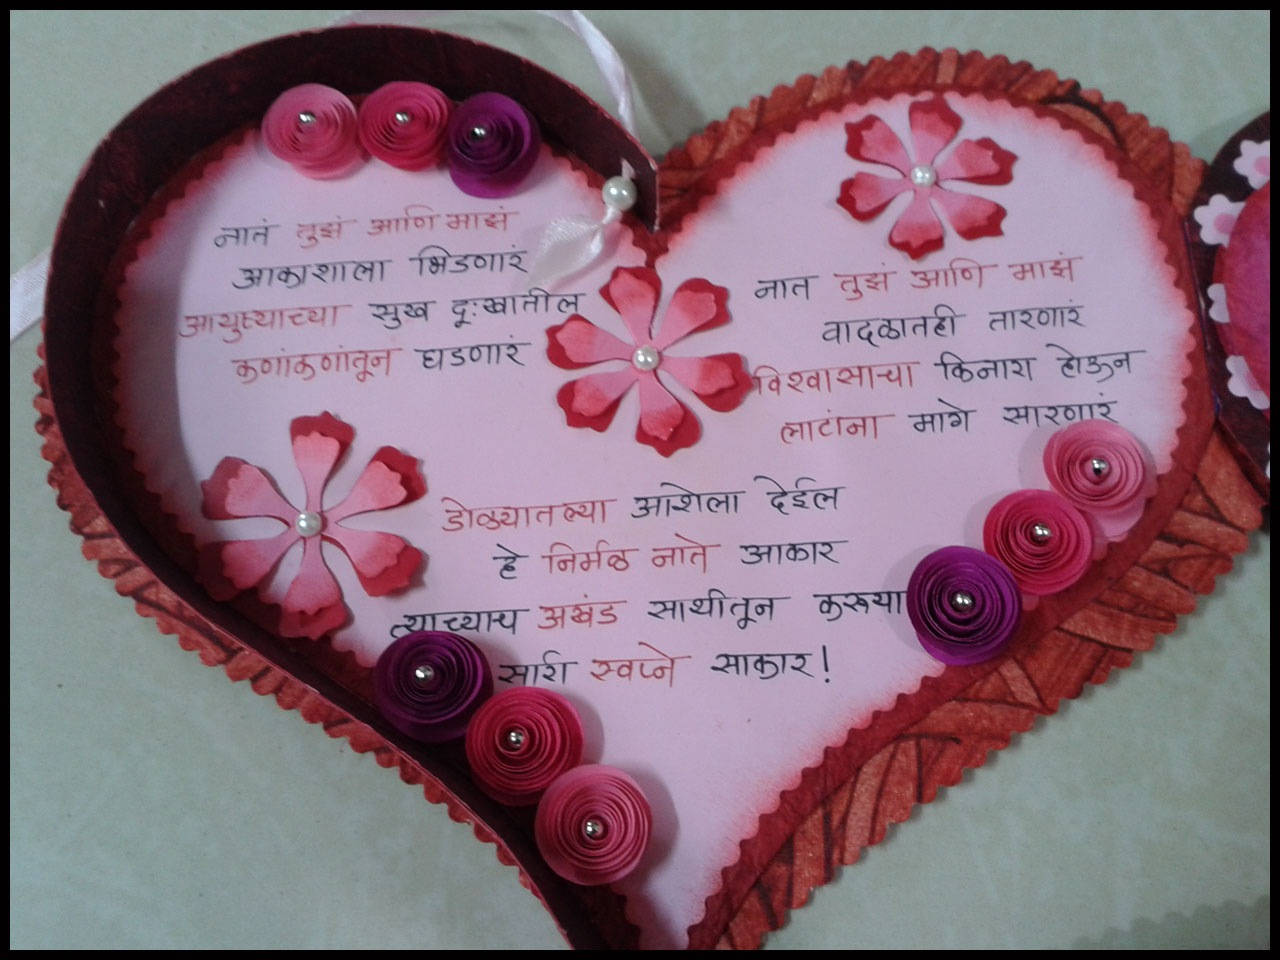 romantic greeting cards for husband birthday ; marathi-greeting-cards-for-husband-lina-s-handmade-cards-handmade-birthday-cards-for-husband-handmade-birthday-cards-for-husband